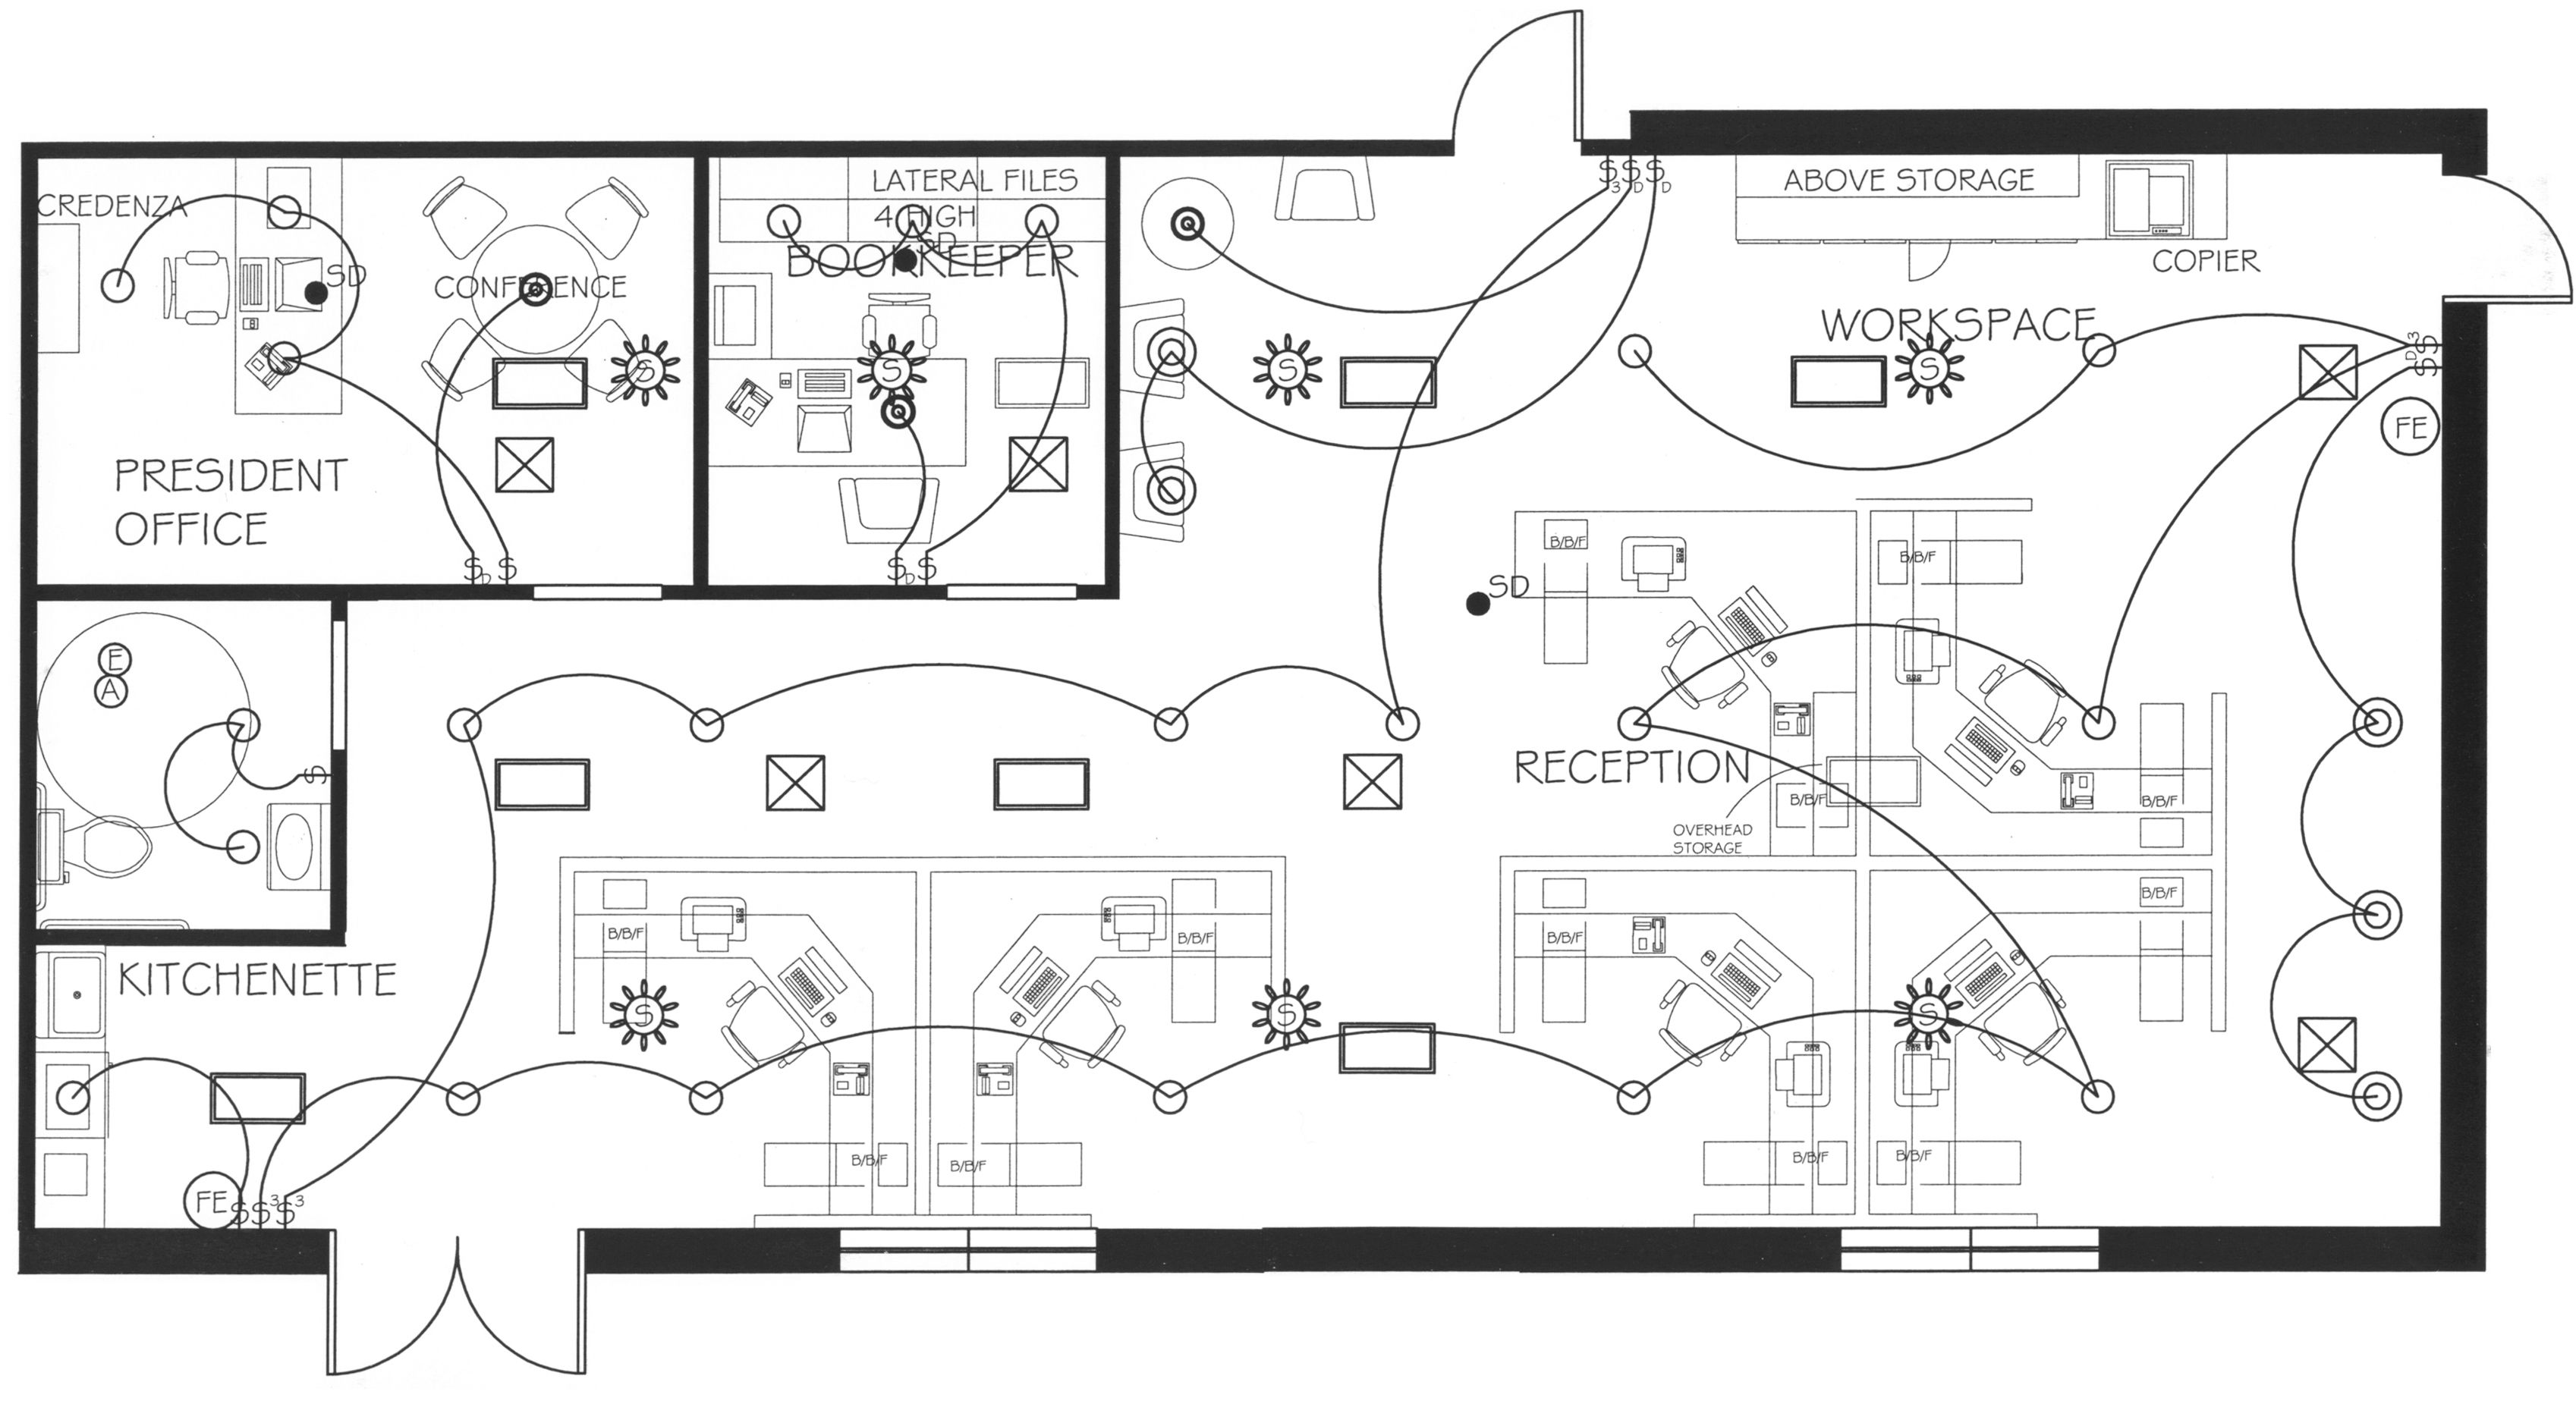 medium resolution of office layout floor plan lauren dugger s portfolio